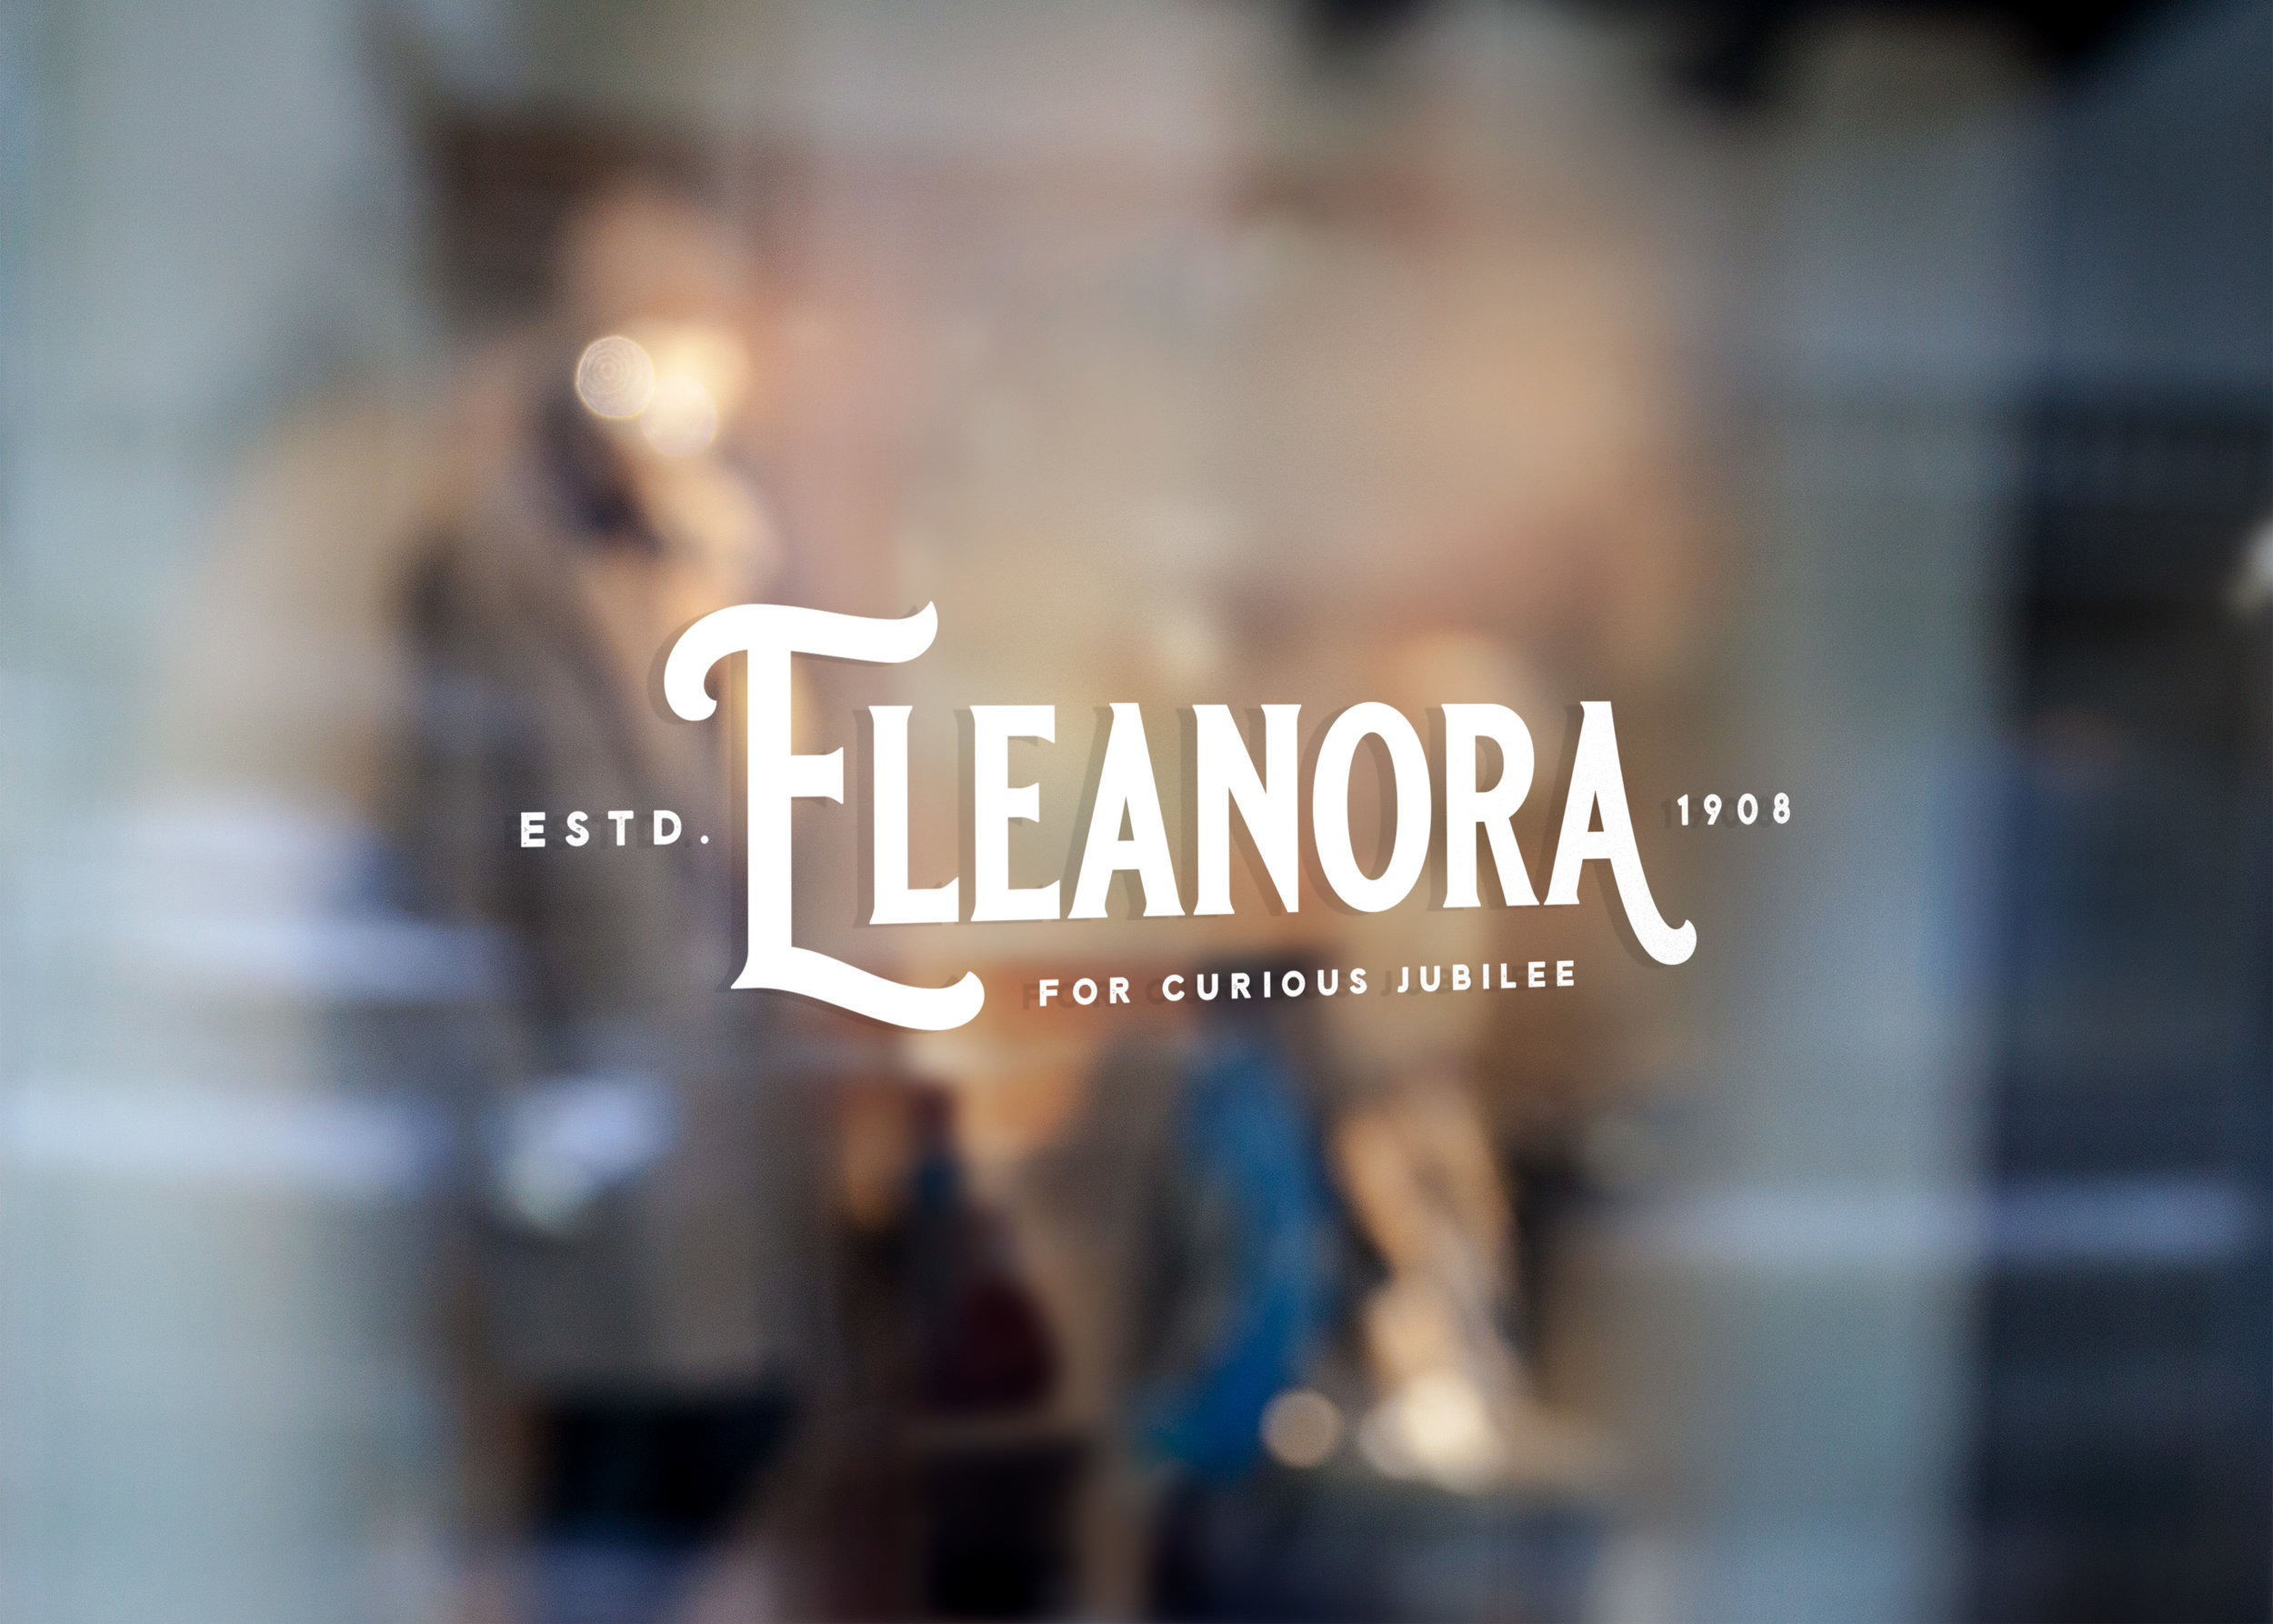 eleanora-window-4.jpg